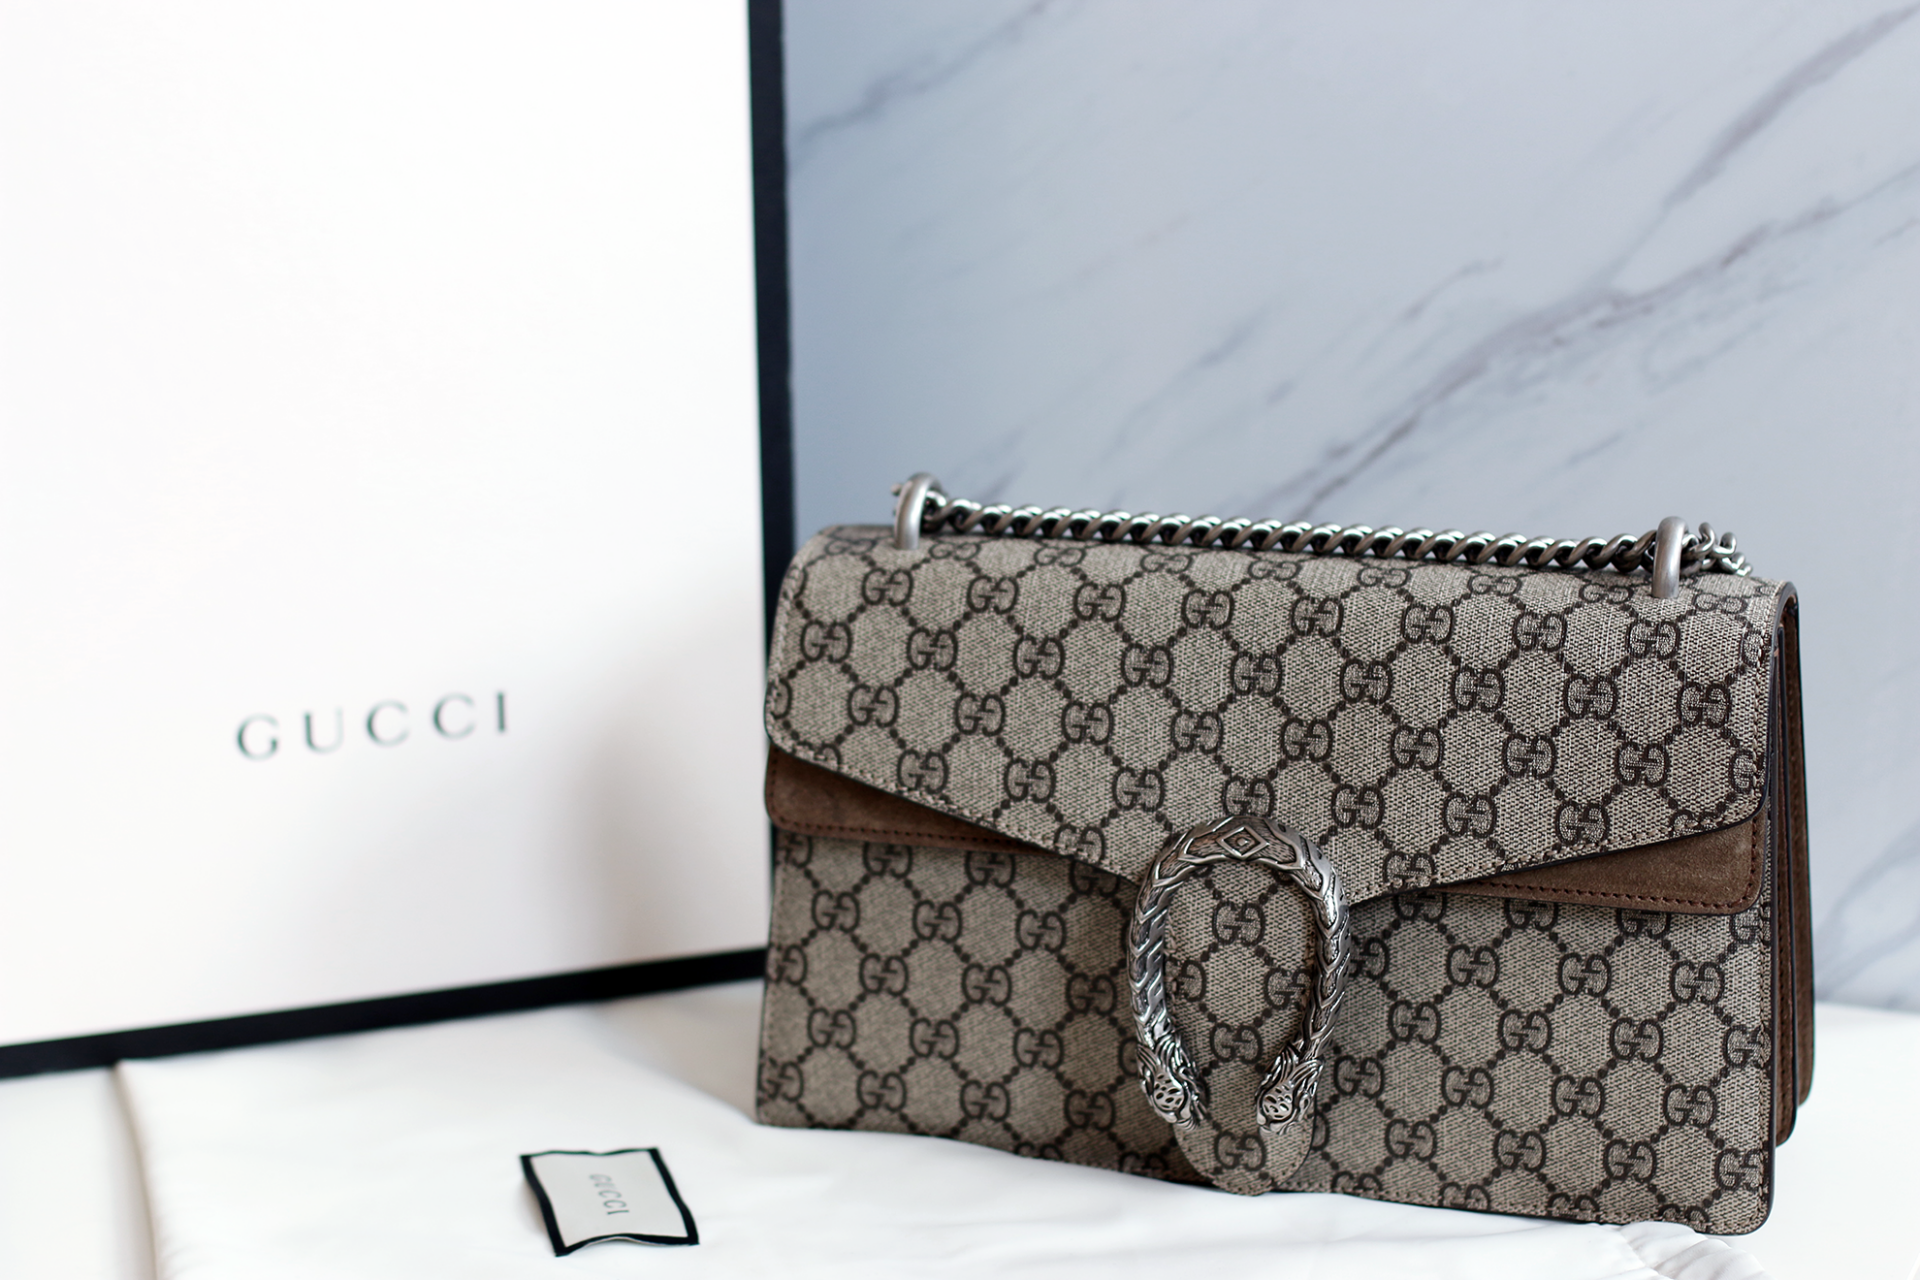 556b8d311 NEW IN | Gucci Dionysus GG Supreme Designer Bag - Lily Like